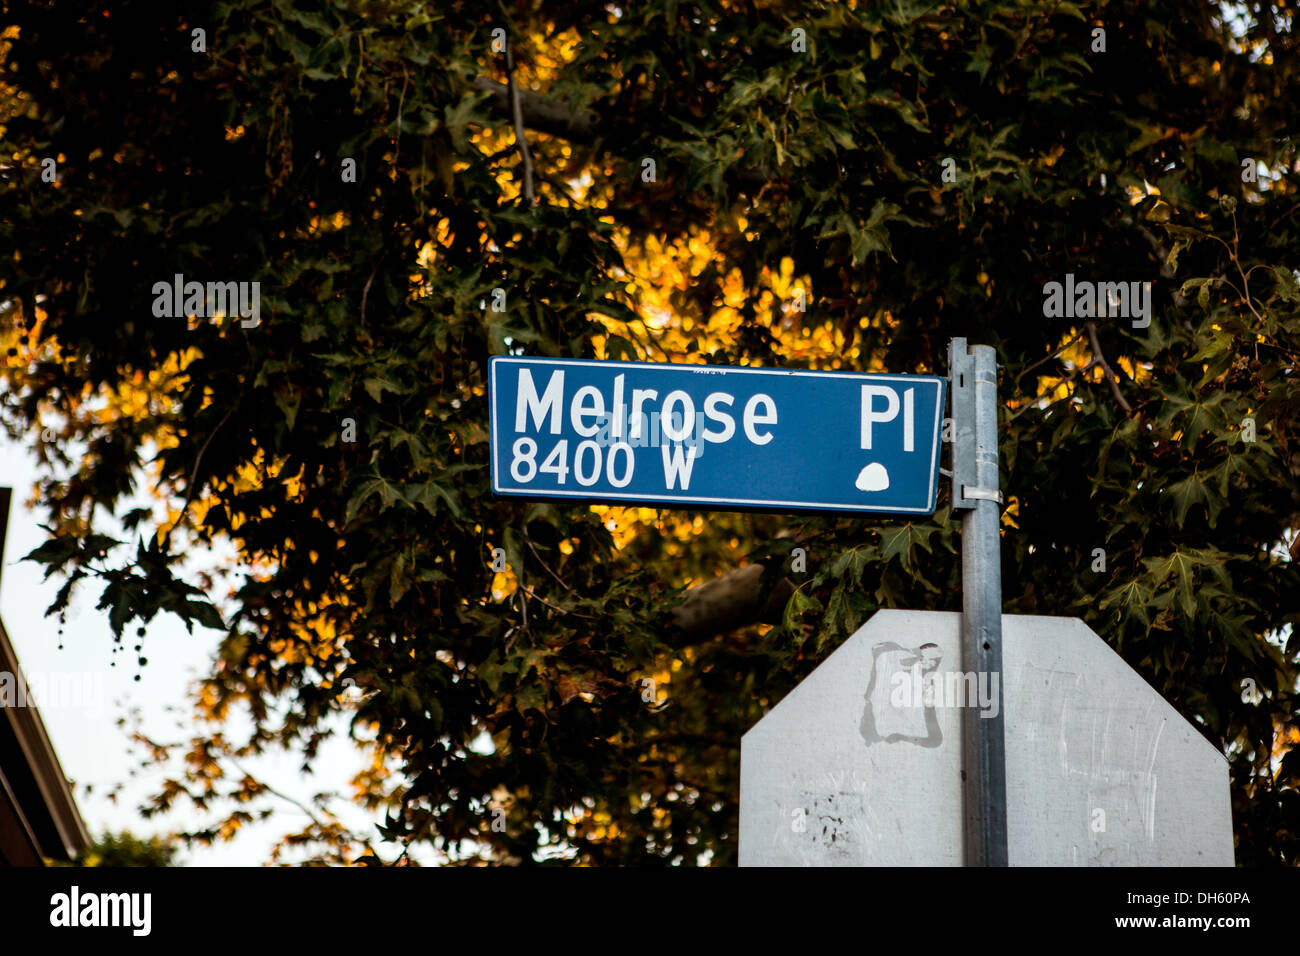 Street sign with the name Melrose place - Stock Image